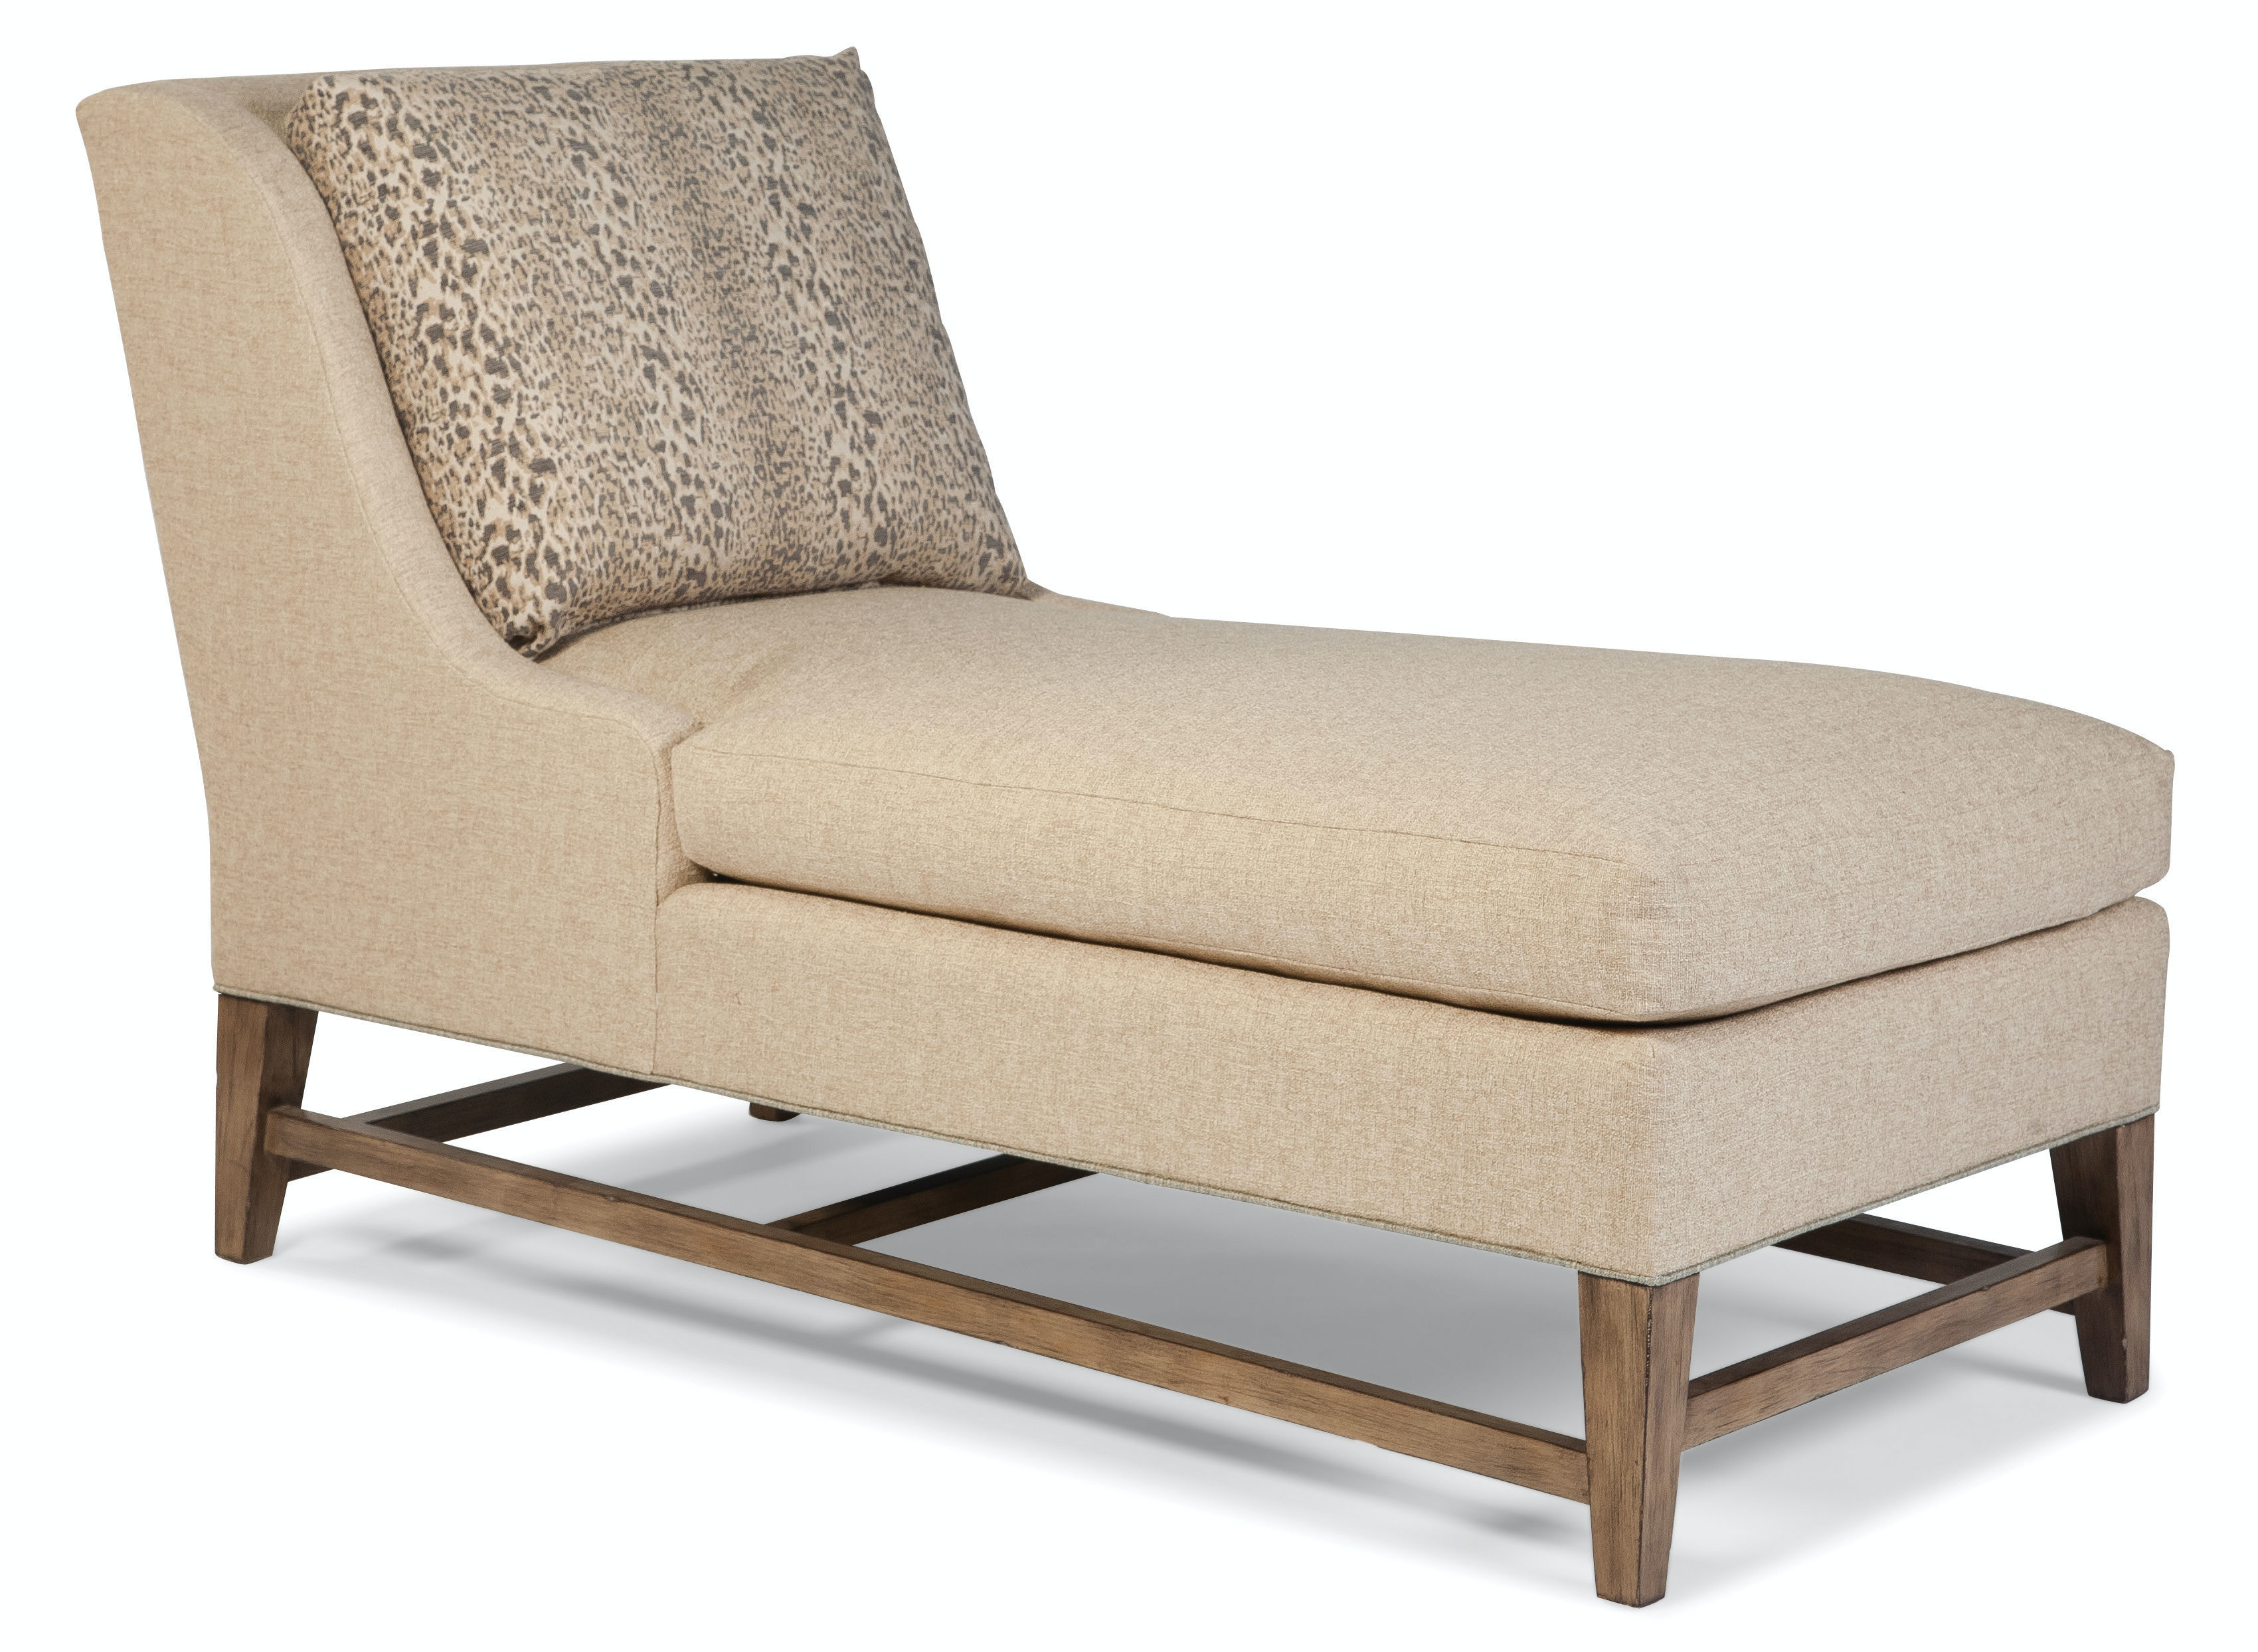 Fairfield Chair pany Living Room Chaise 2601 25